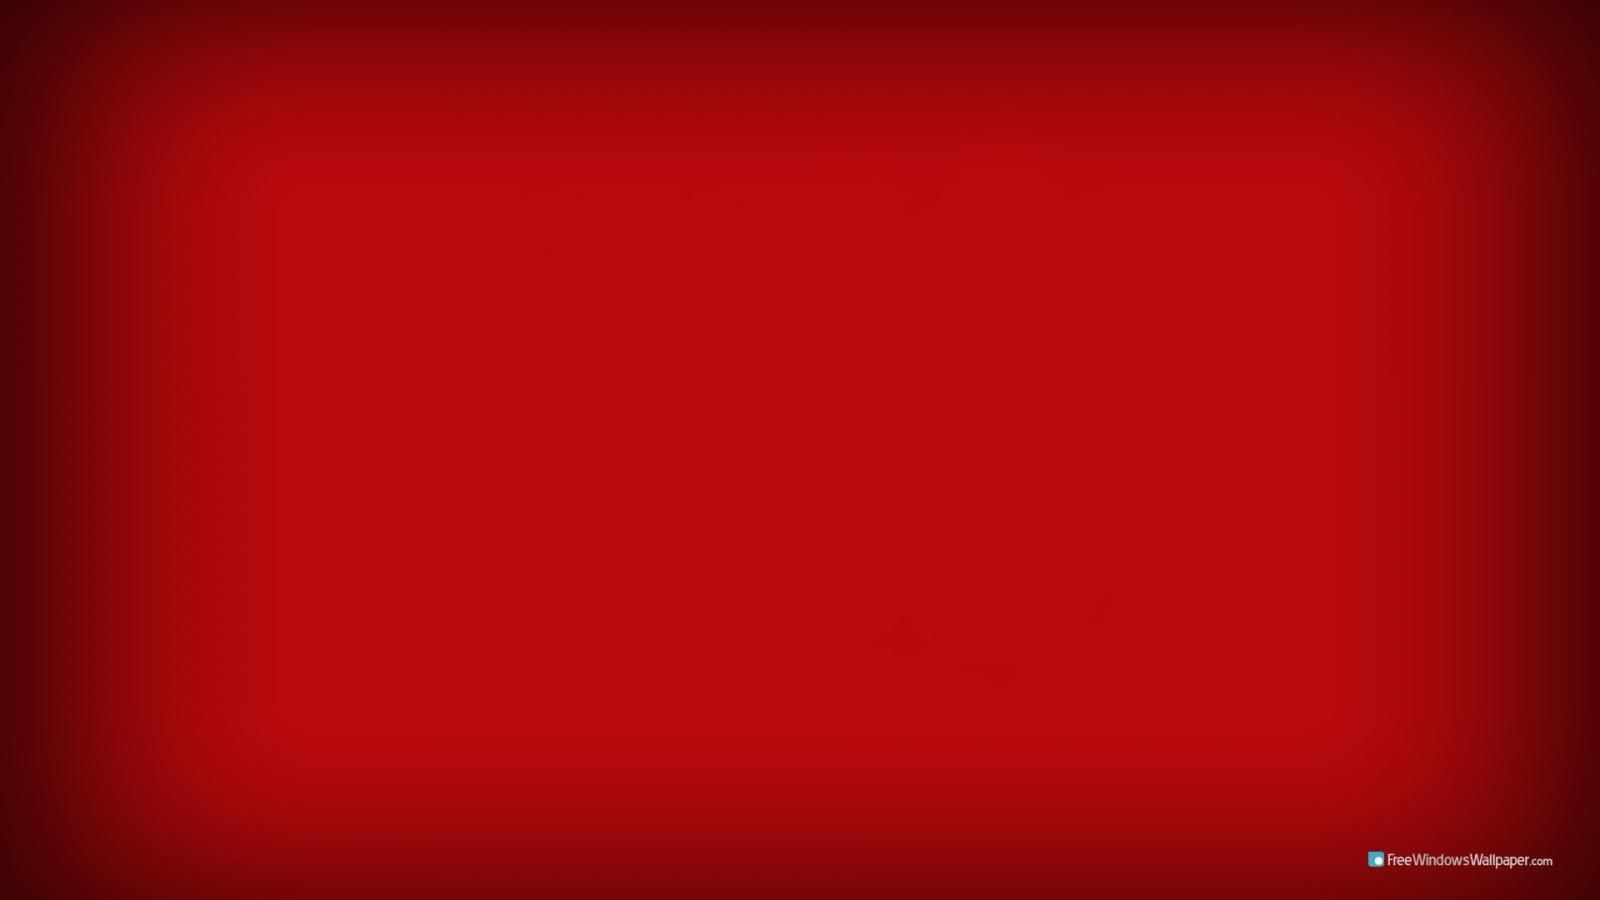 1600x900 solid color backgrounds | 1600x900 | Solid Red Wallpaper ...